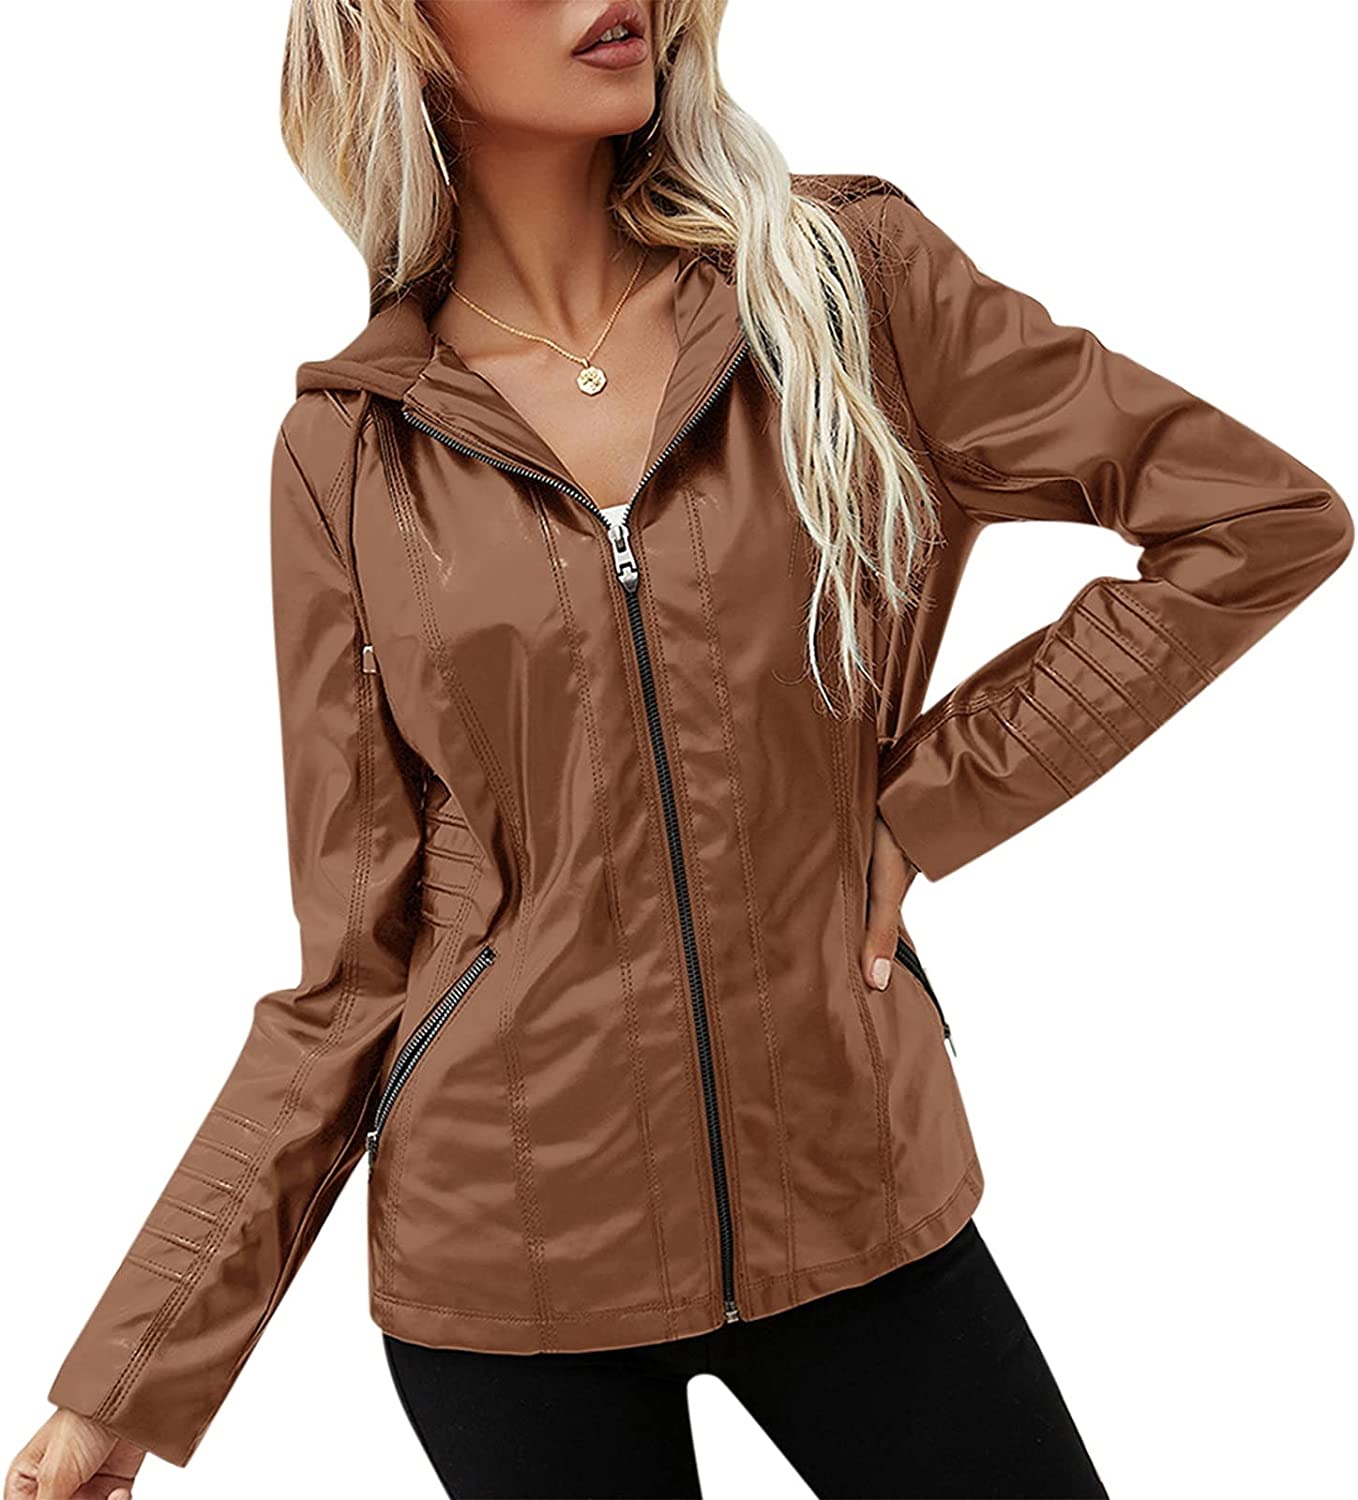 Goldweather Women Leather Jacket Zipper Long Sleeve Lapel Casual Quilted Lightweight Faux Motorcycle Outerwear Coat Clothes